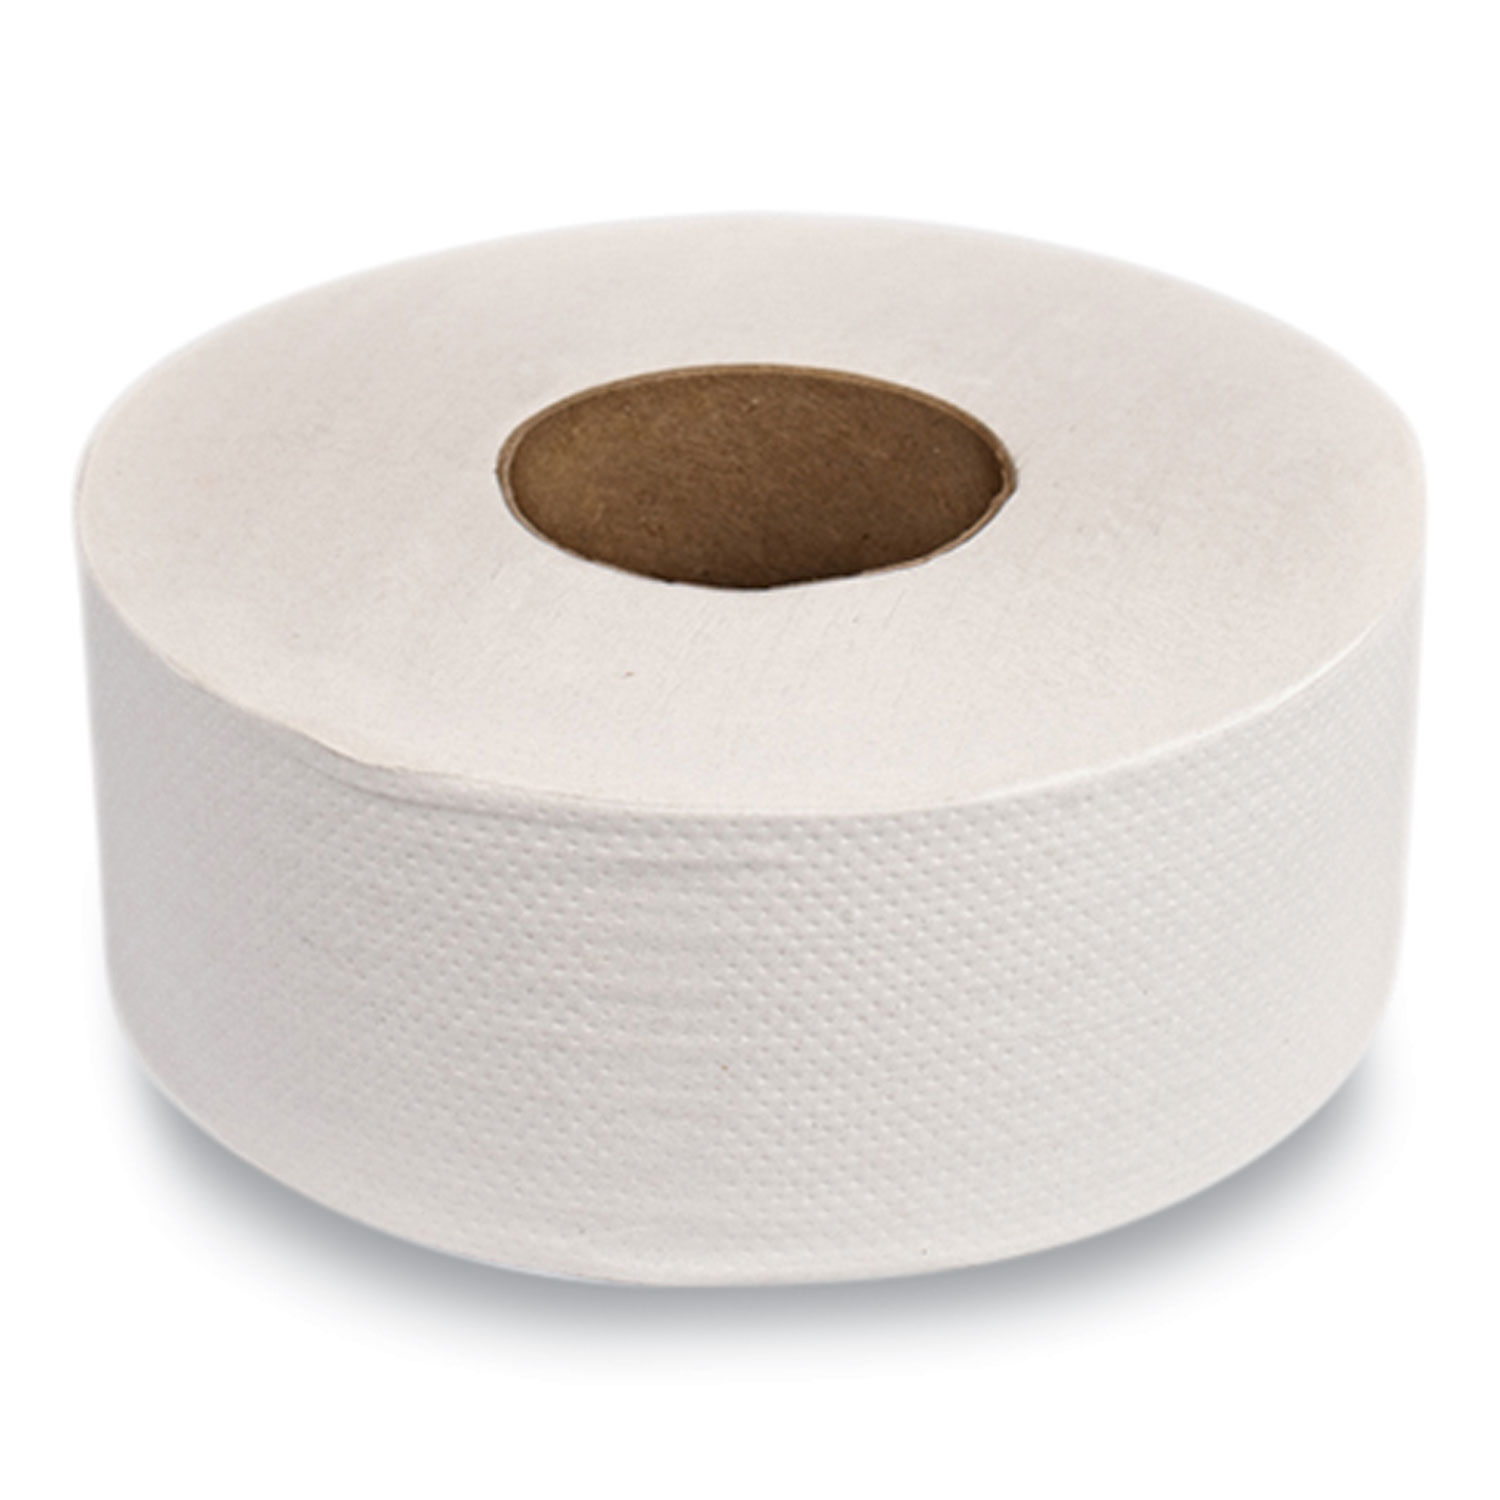 Evolution Two-Ply Jumbo Roll Toilet Paper, White, 9 dia. x 1,000 ft, 12 Rolls/Carton